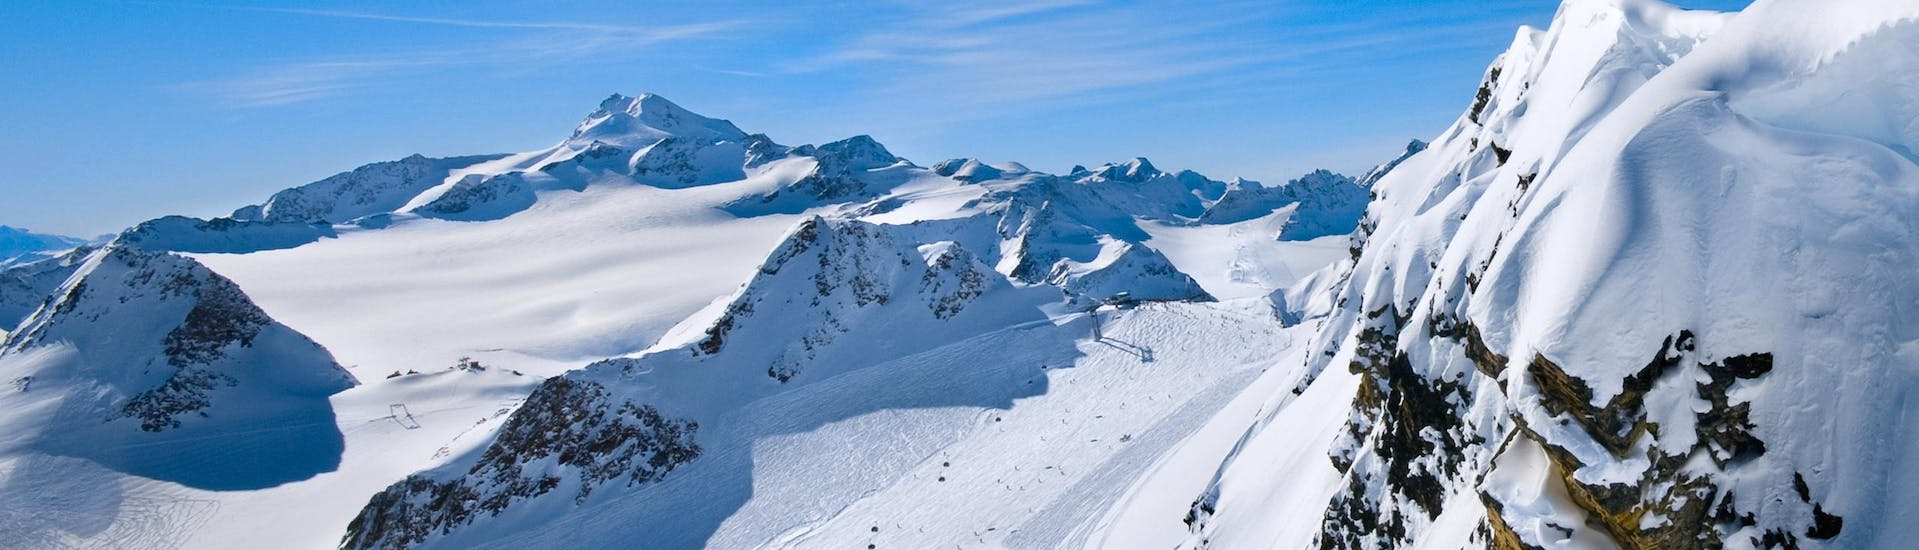 Freeriding Private for Adults - All Levels avec Skischule Sunny Finkenberg - Hero image